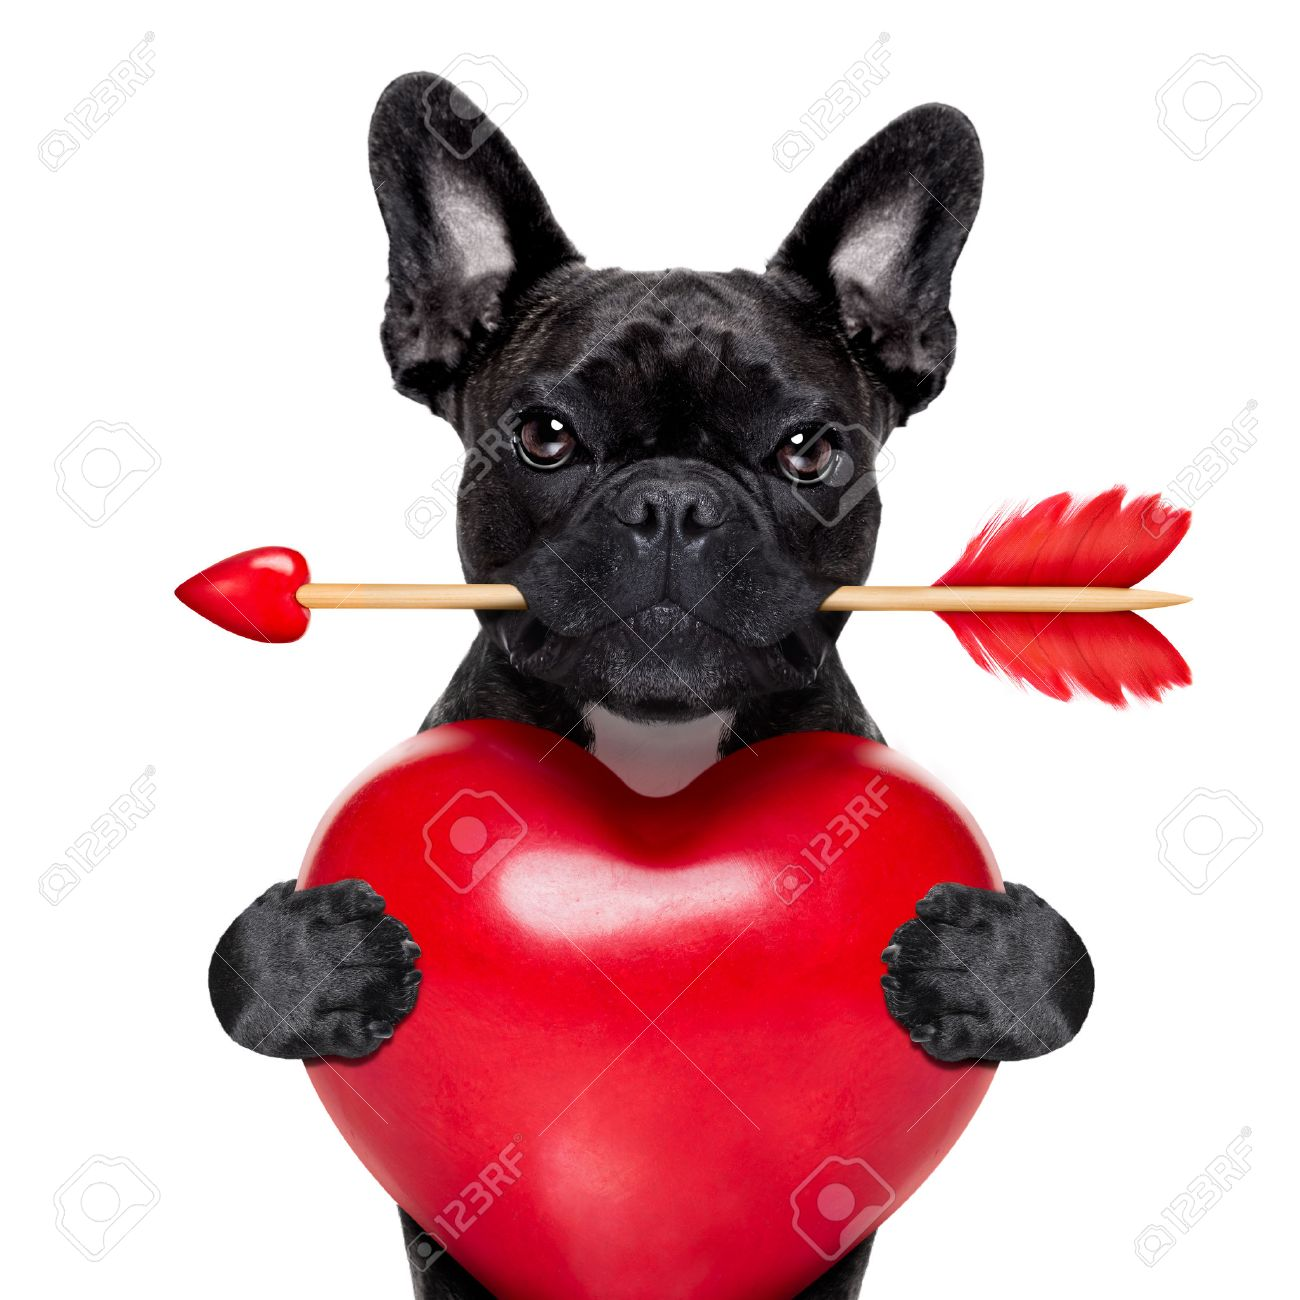 valentines french bulldog dog in love holding a cupids arrow with mouth and holding a big heart, isolated on white background Stock Photo - 43805985